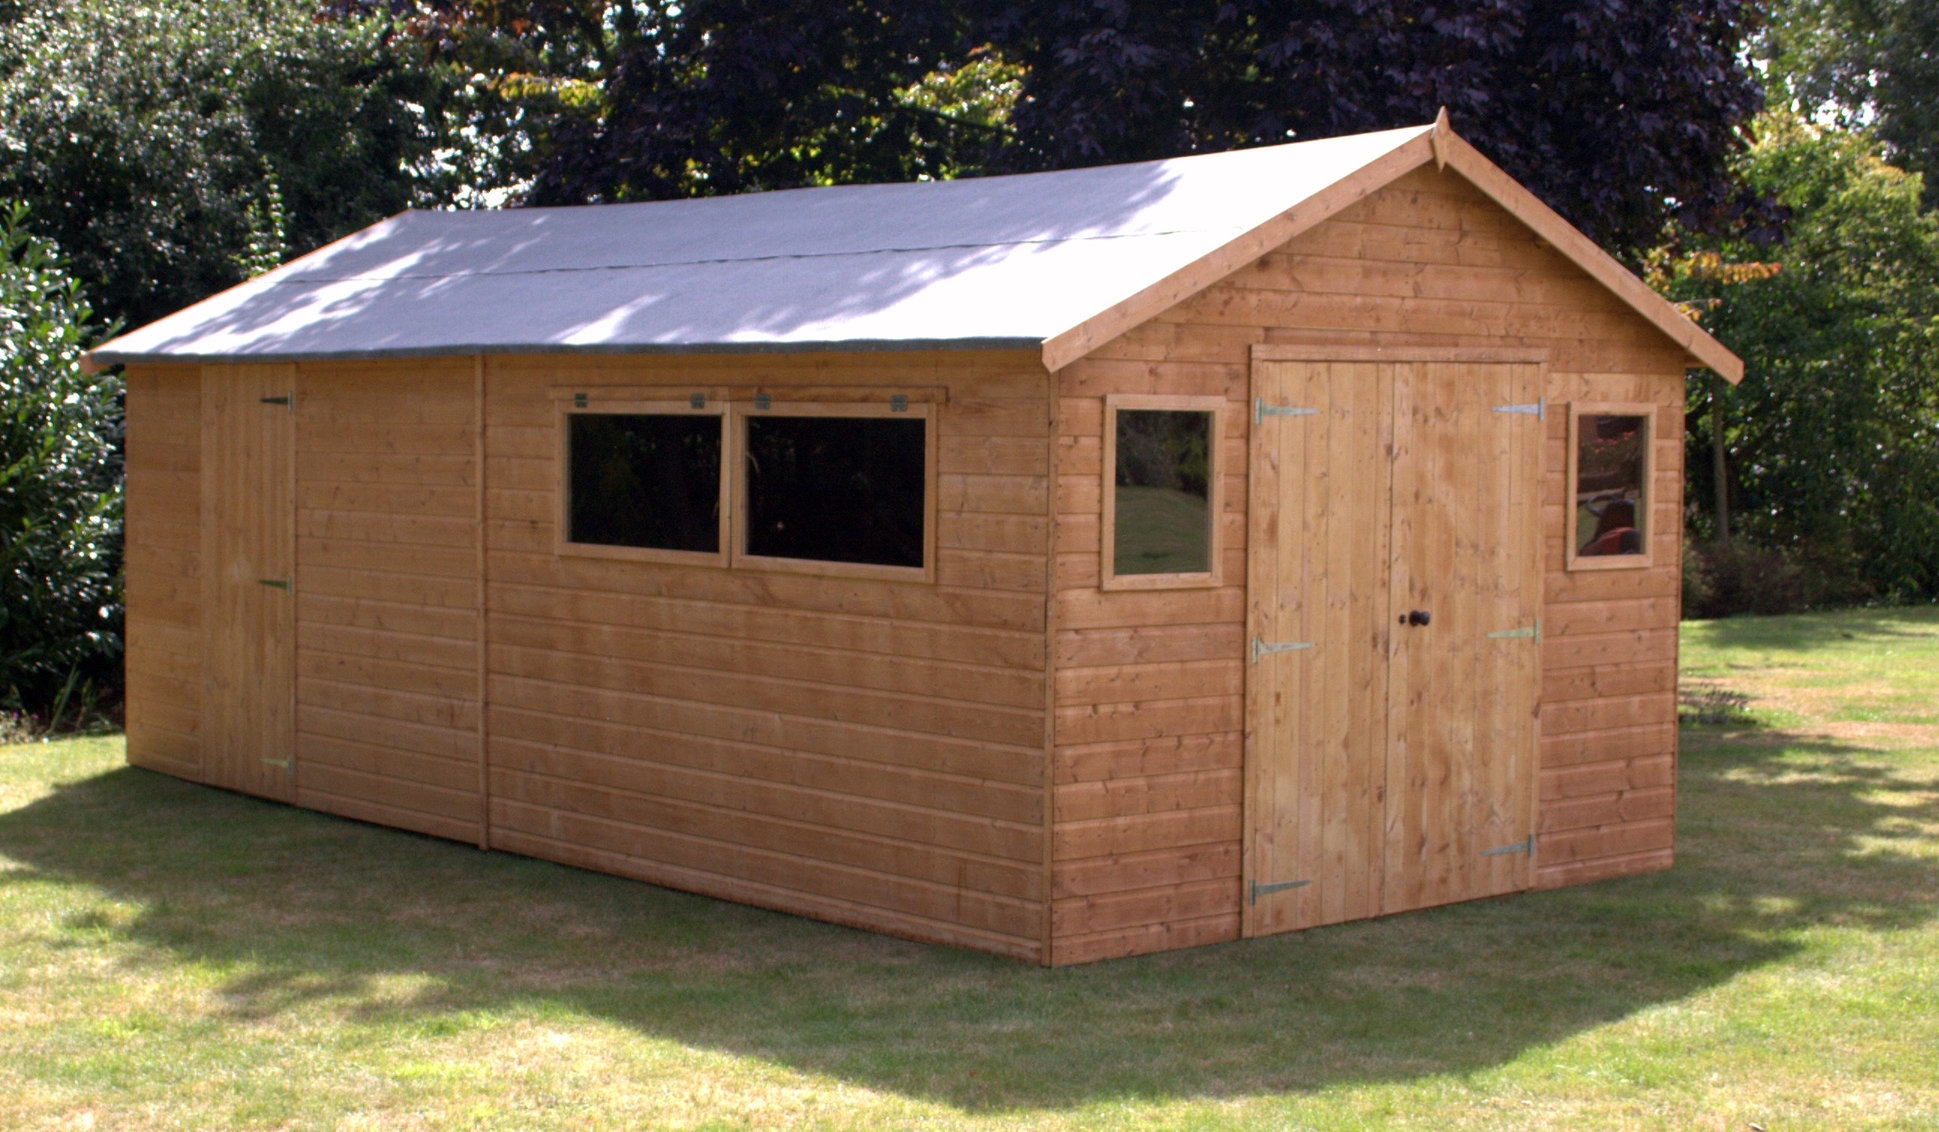 Collection of wooden sheds it helps in saving your time and money. you can do work under amiqfio